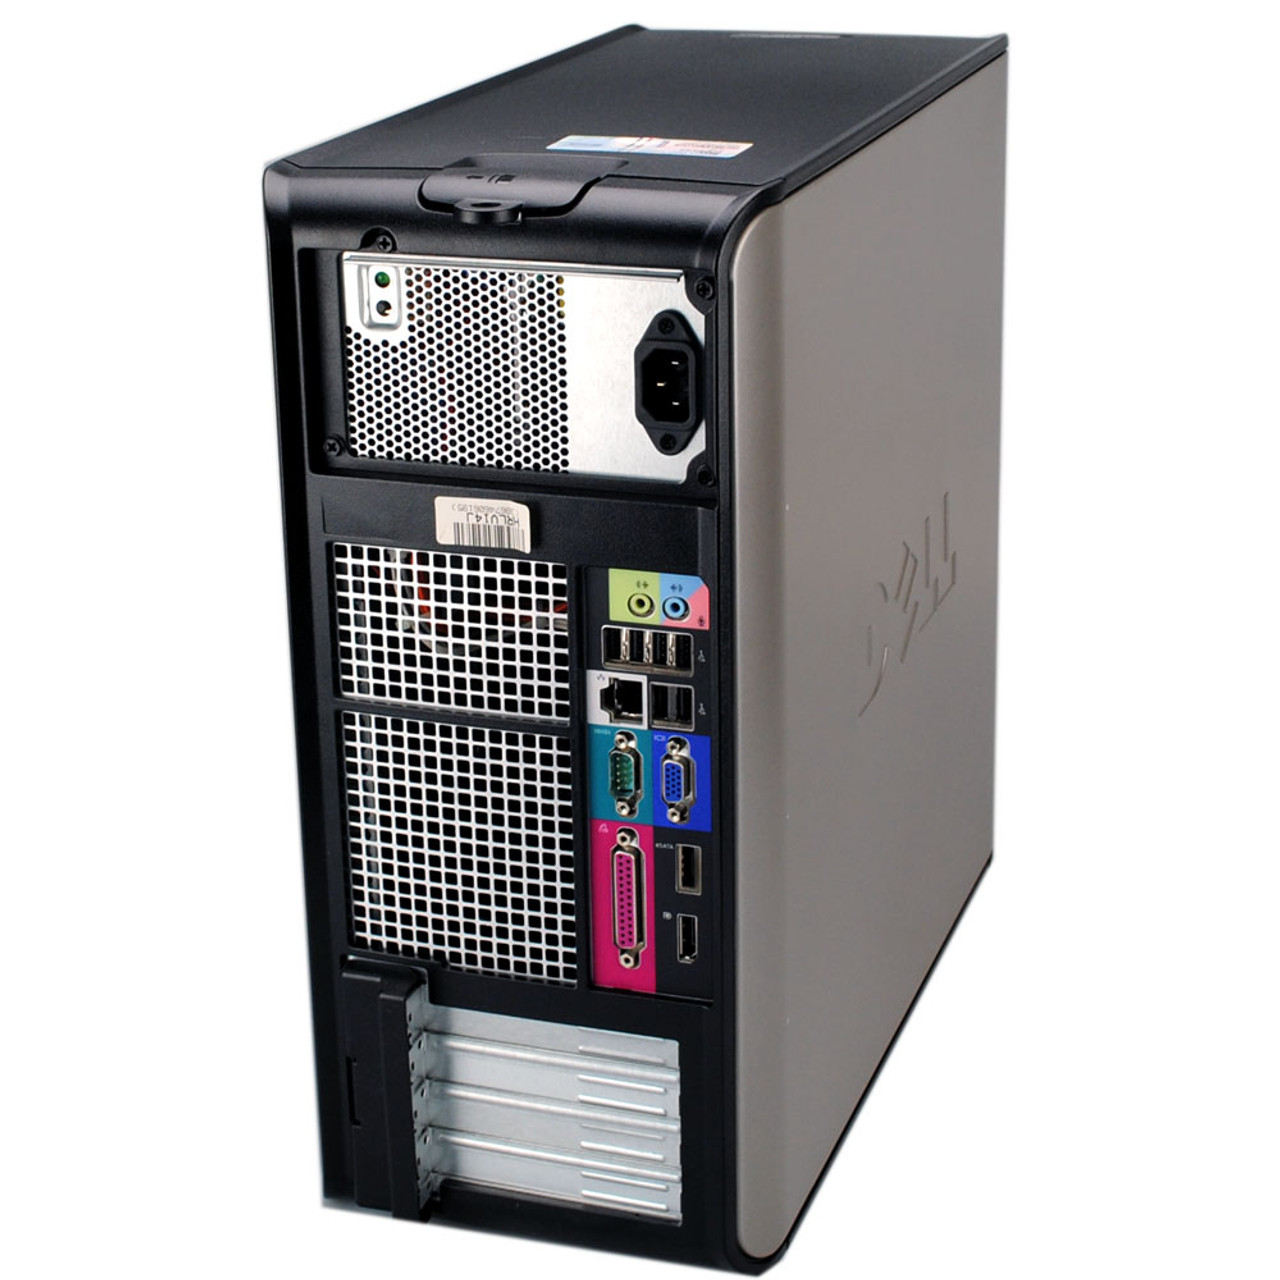 Dell Optiplex 760 Tower Core 2 Duo 3.0GHz, 4GB Ram, 160GB HDD, DVD-RW, Windows 7 Pro 64 Desktop Computer